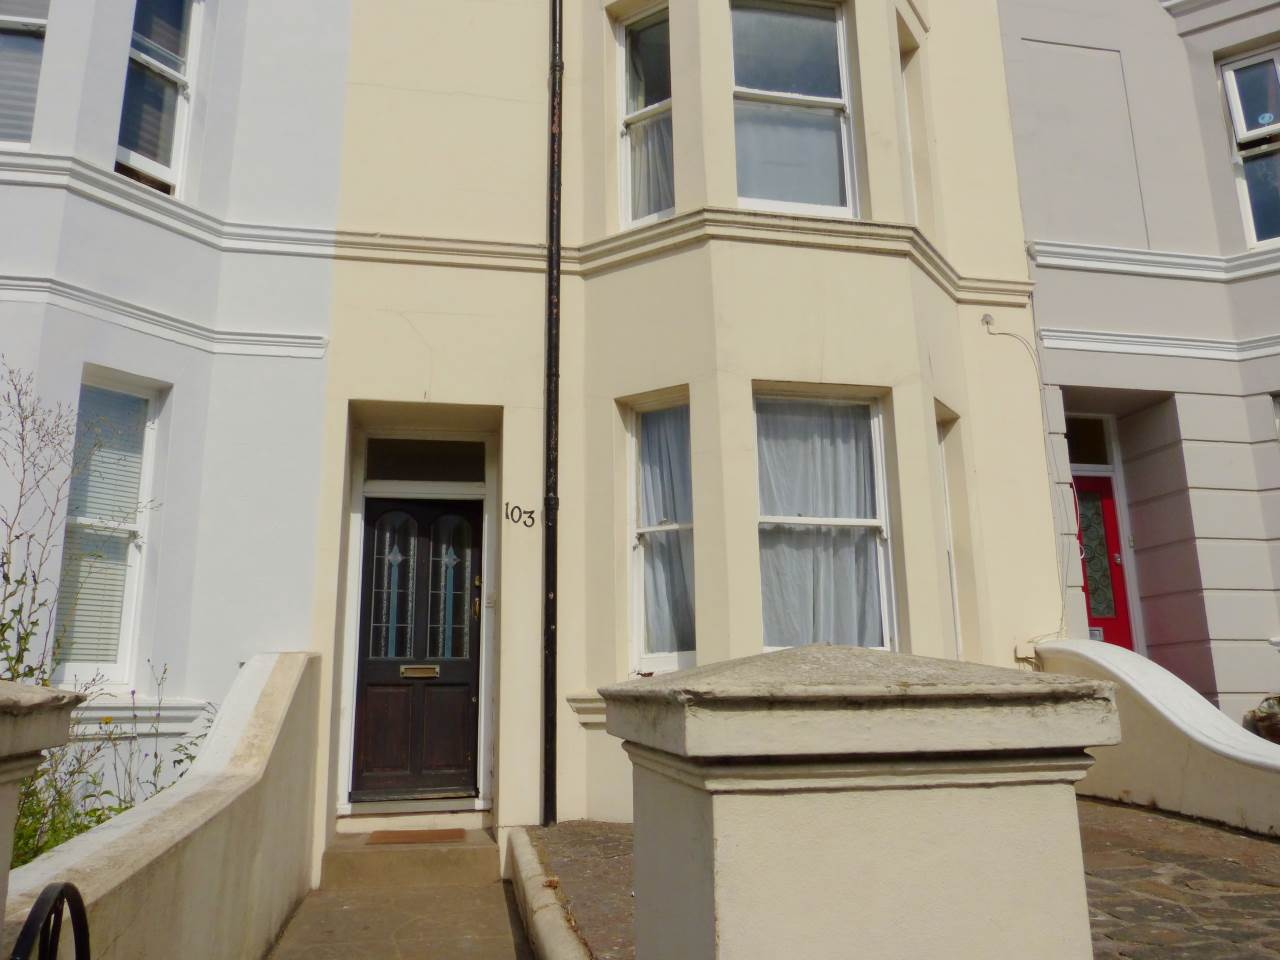 6 bed house to rent in Queen's Park Road, Brighton - Property Image 1